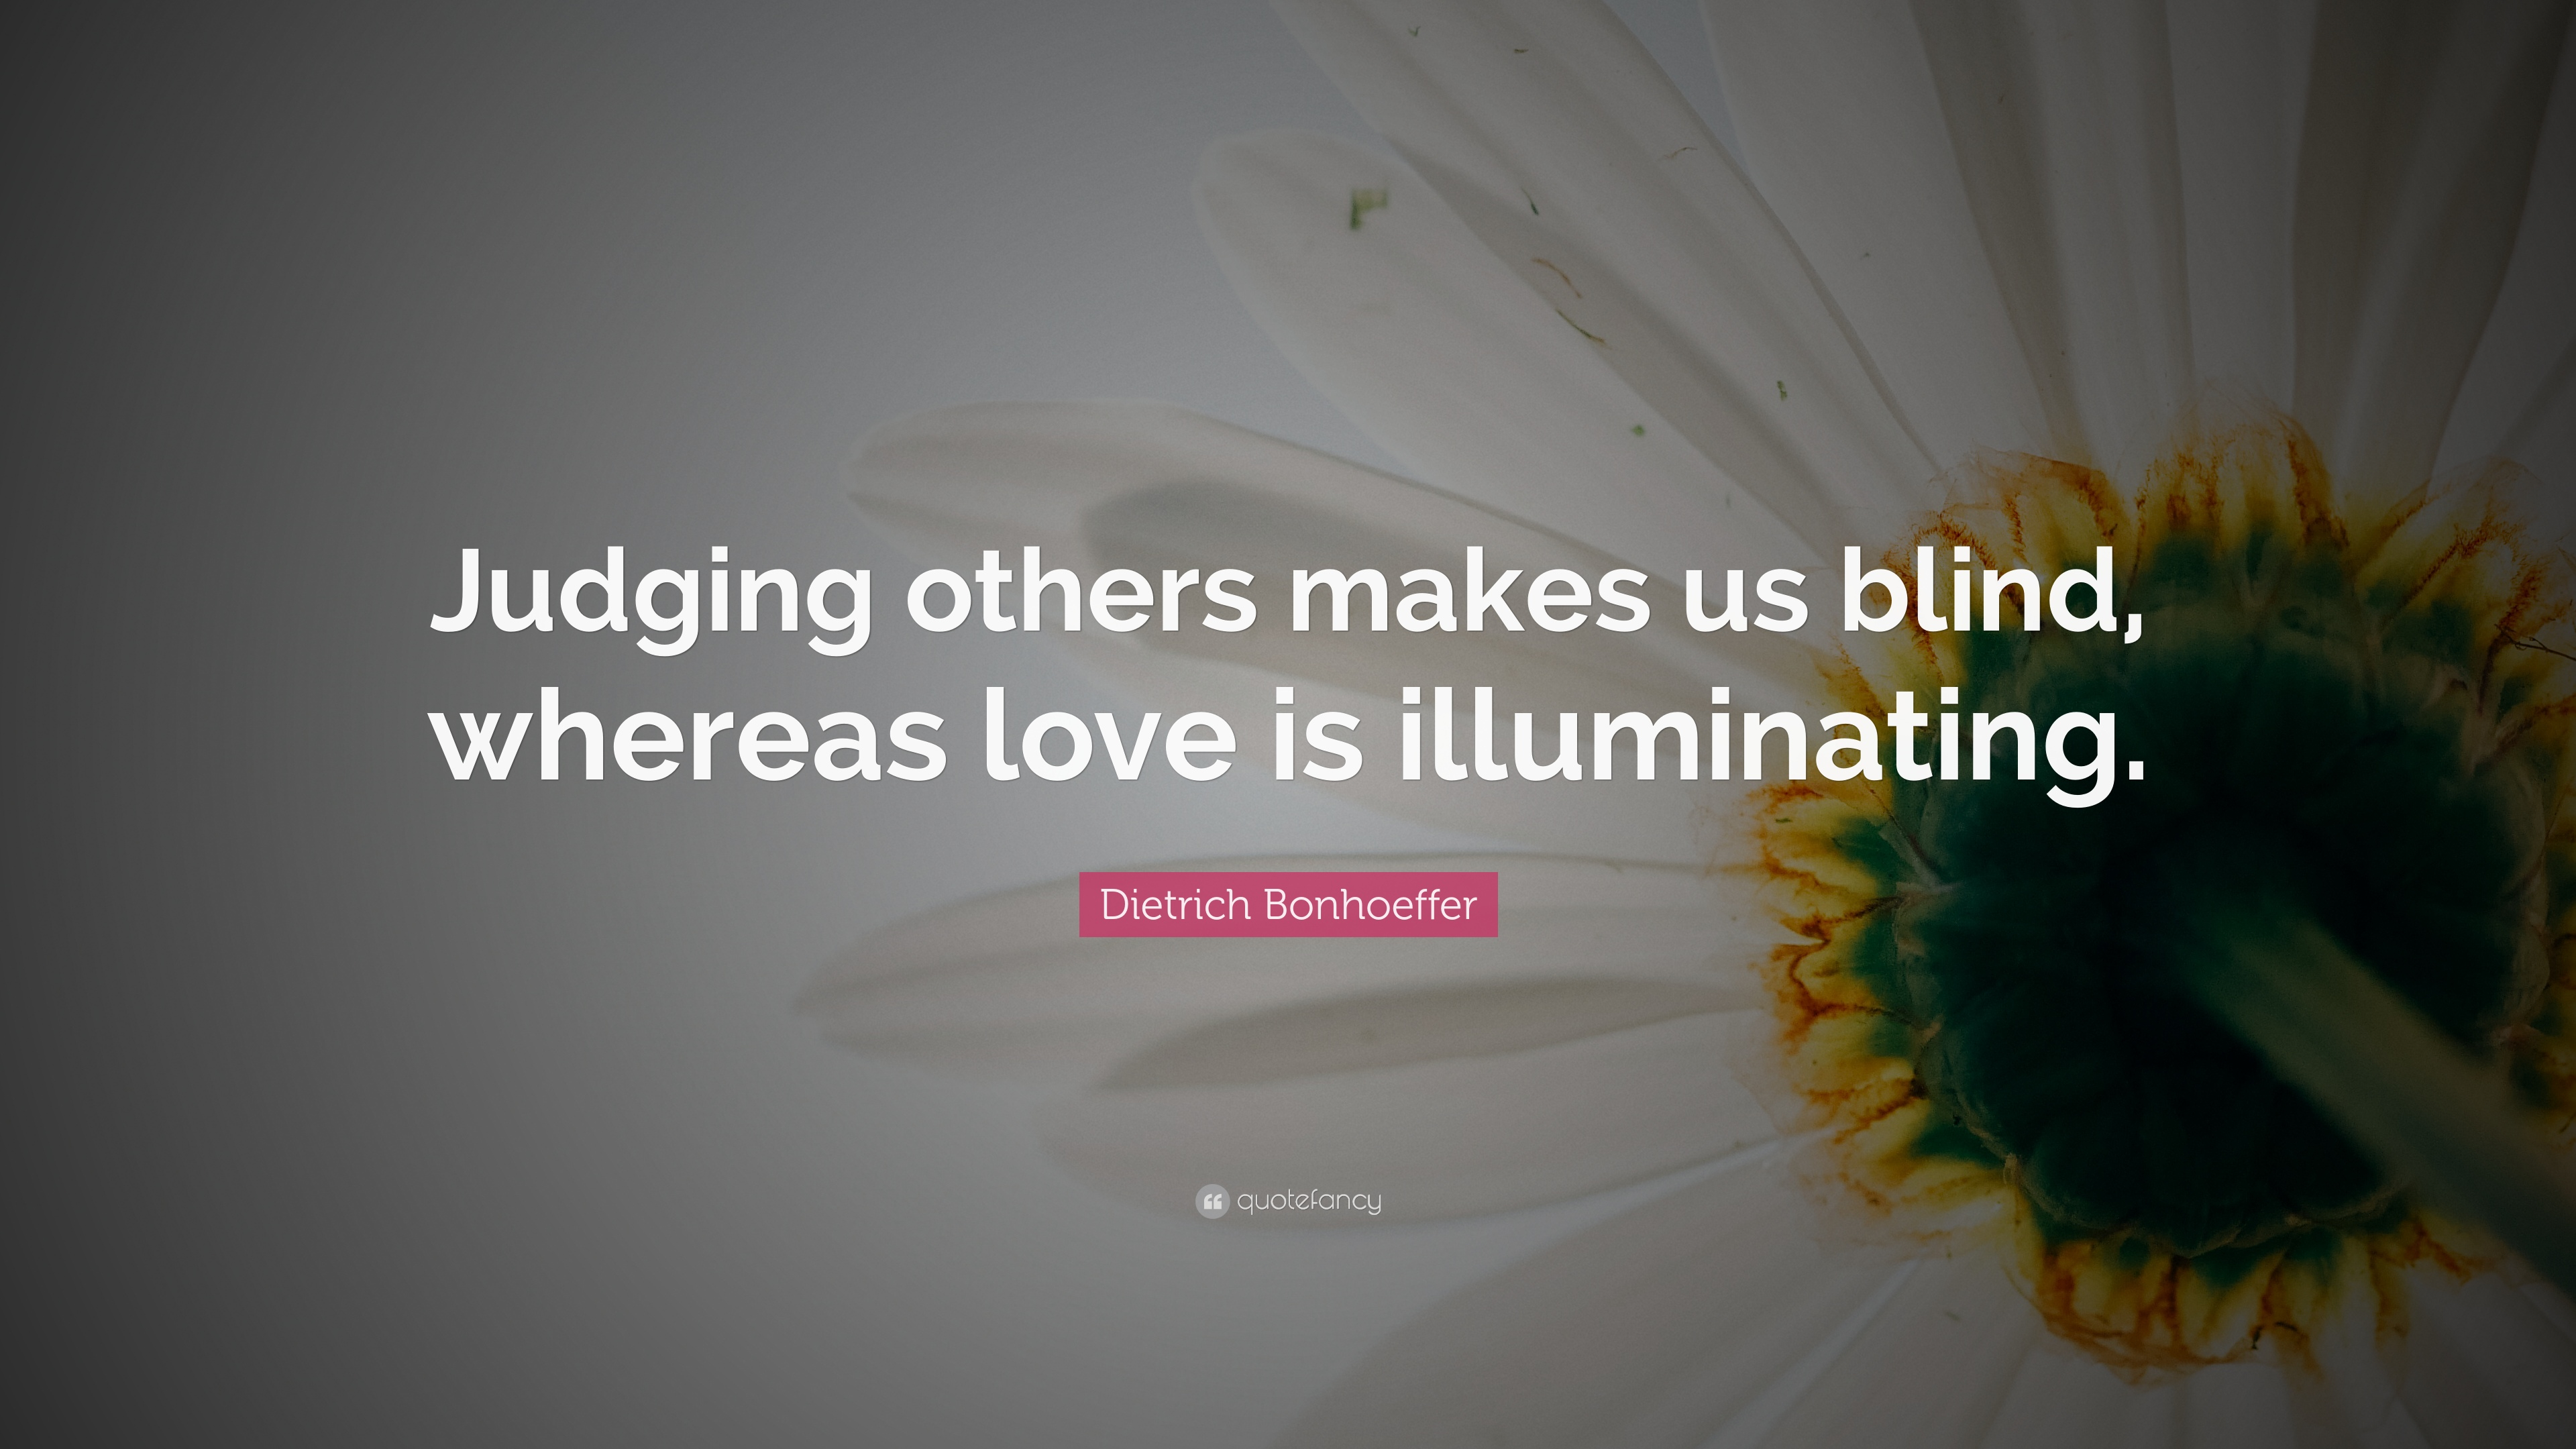 Dietrich Bonhoeffer Quote Judging Others Makes Us Blind Whereas